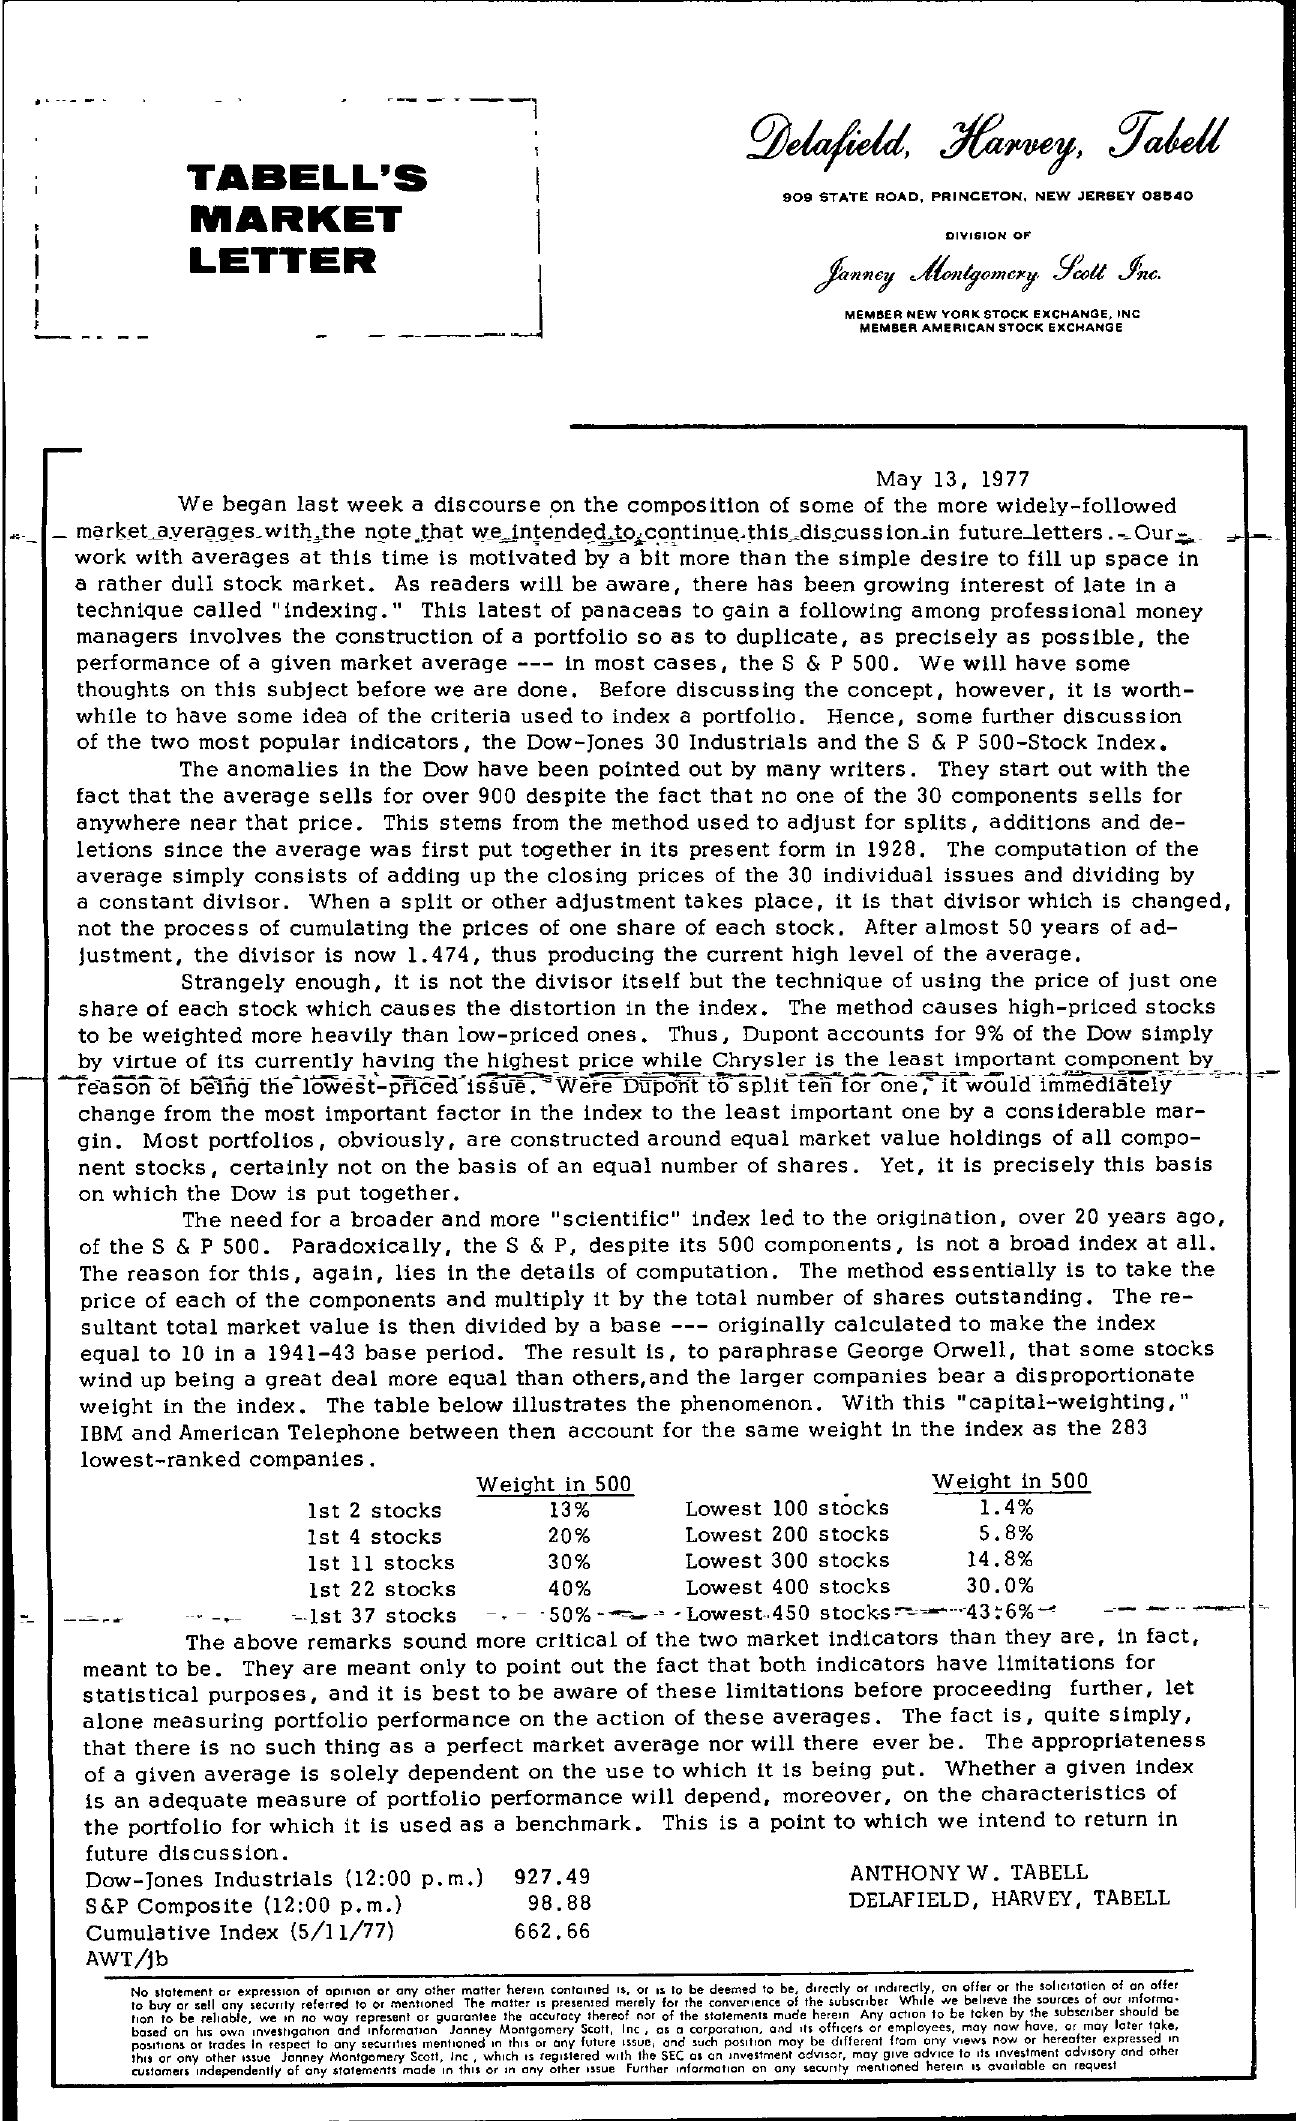 Tabell's Market Letter - May 13, 1977